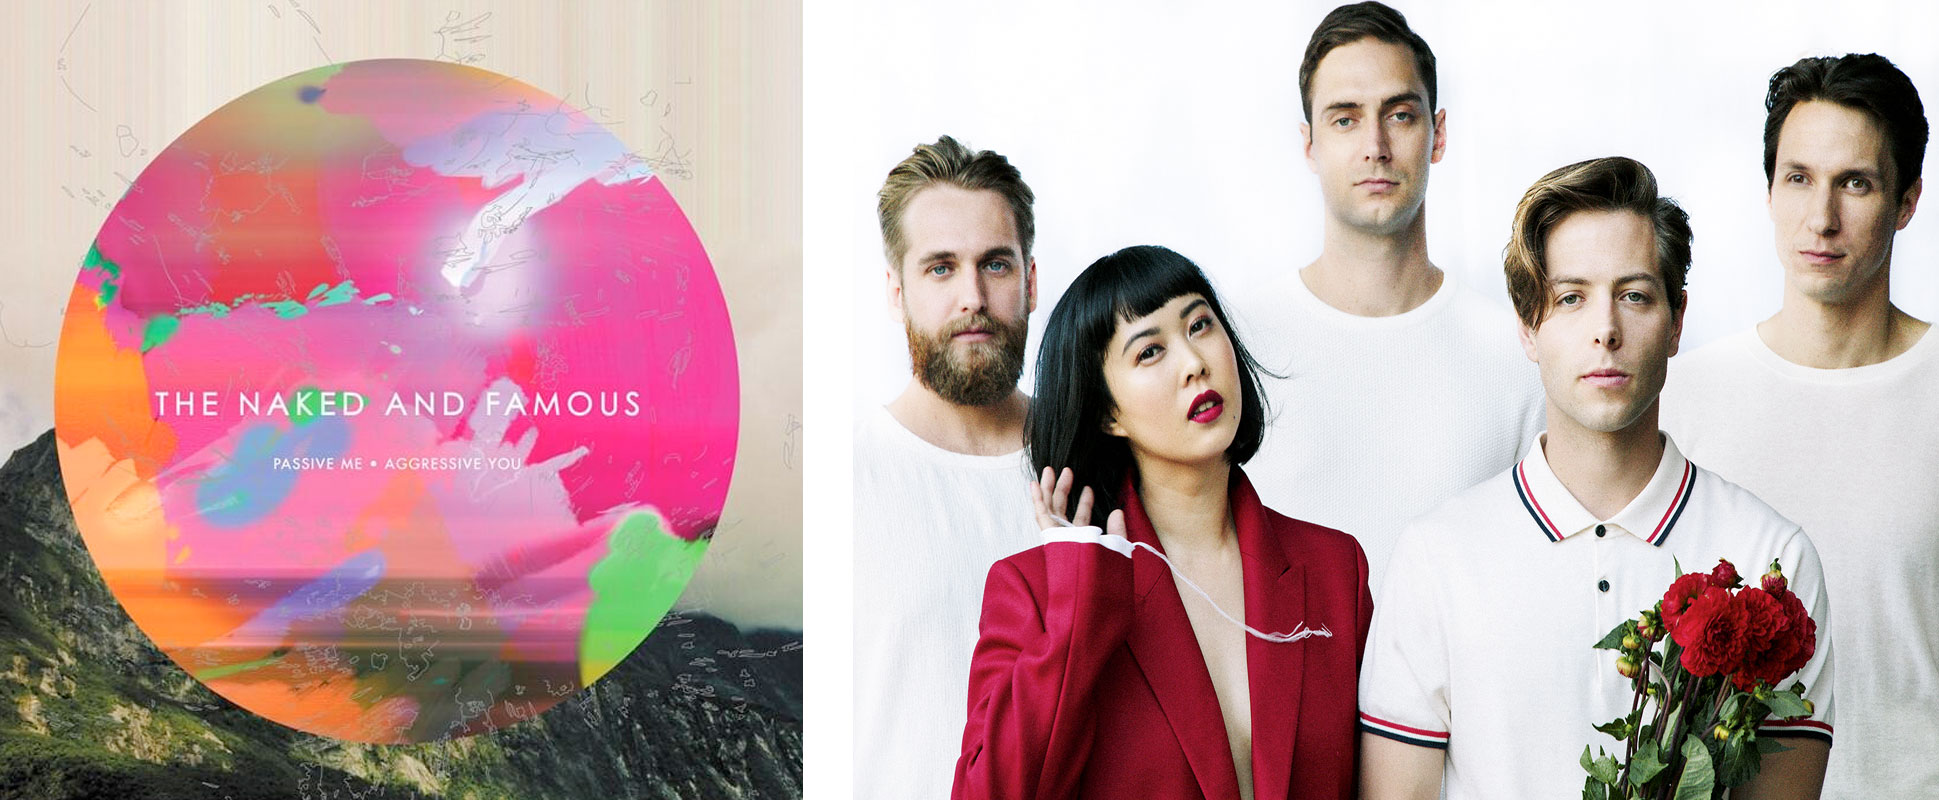 best-dance-albums-2010-naked-famous-passive-me-aggressive-you